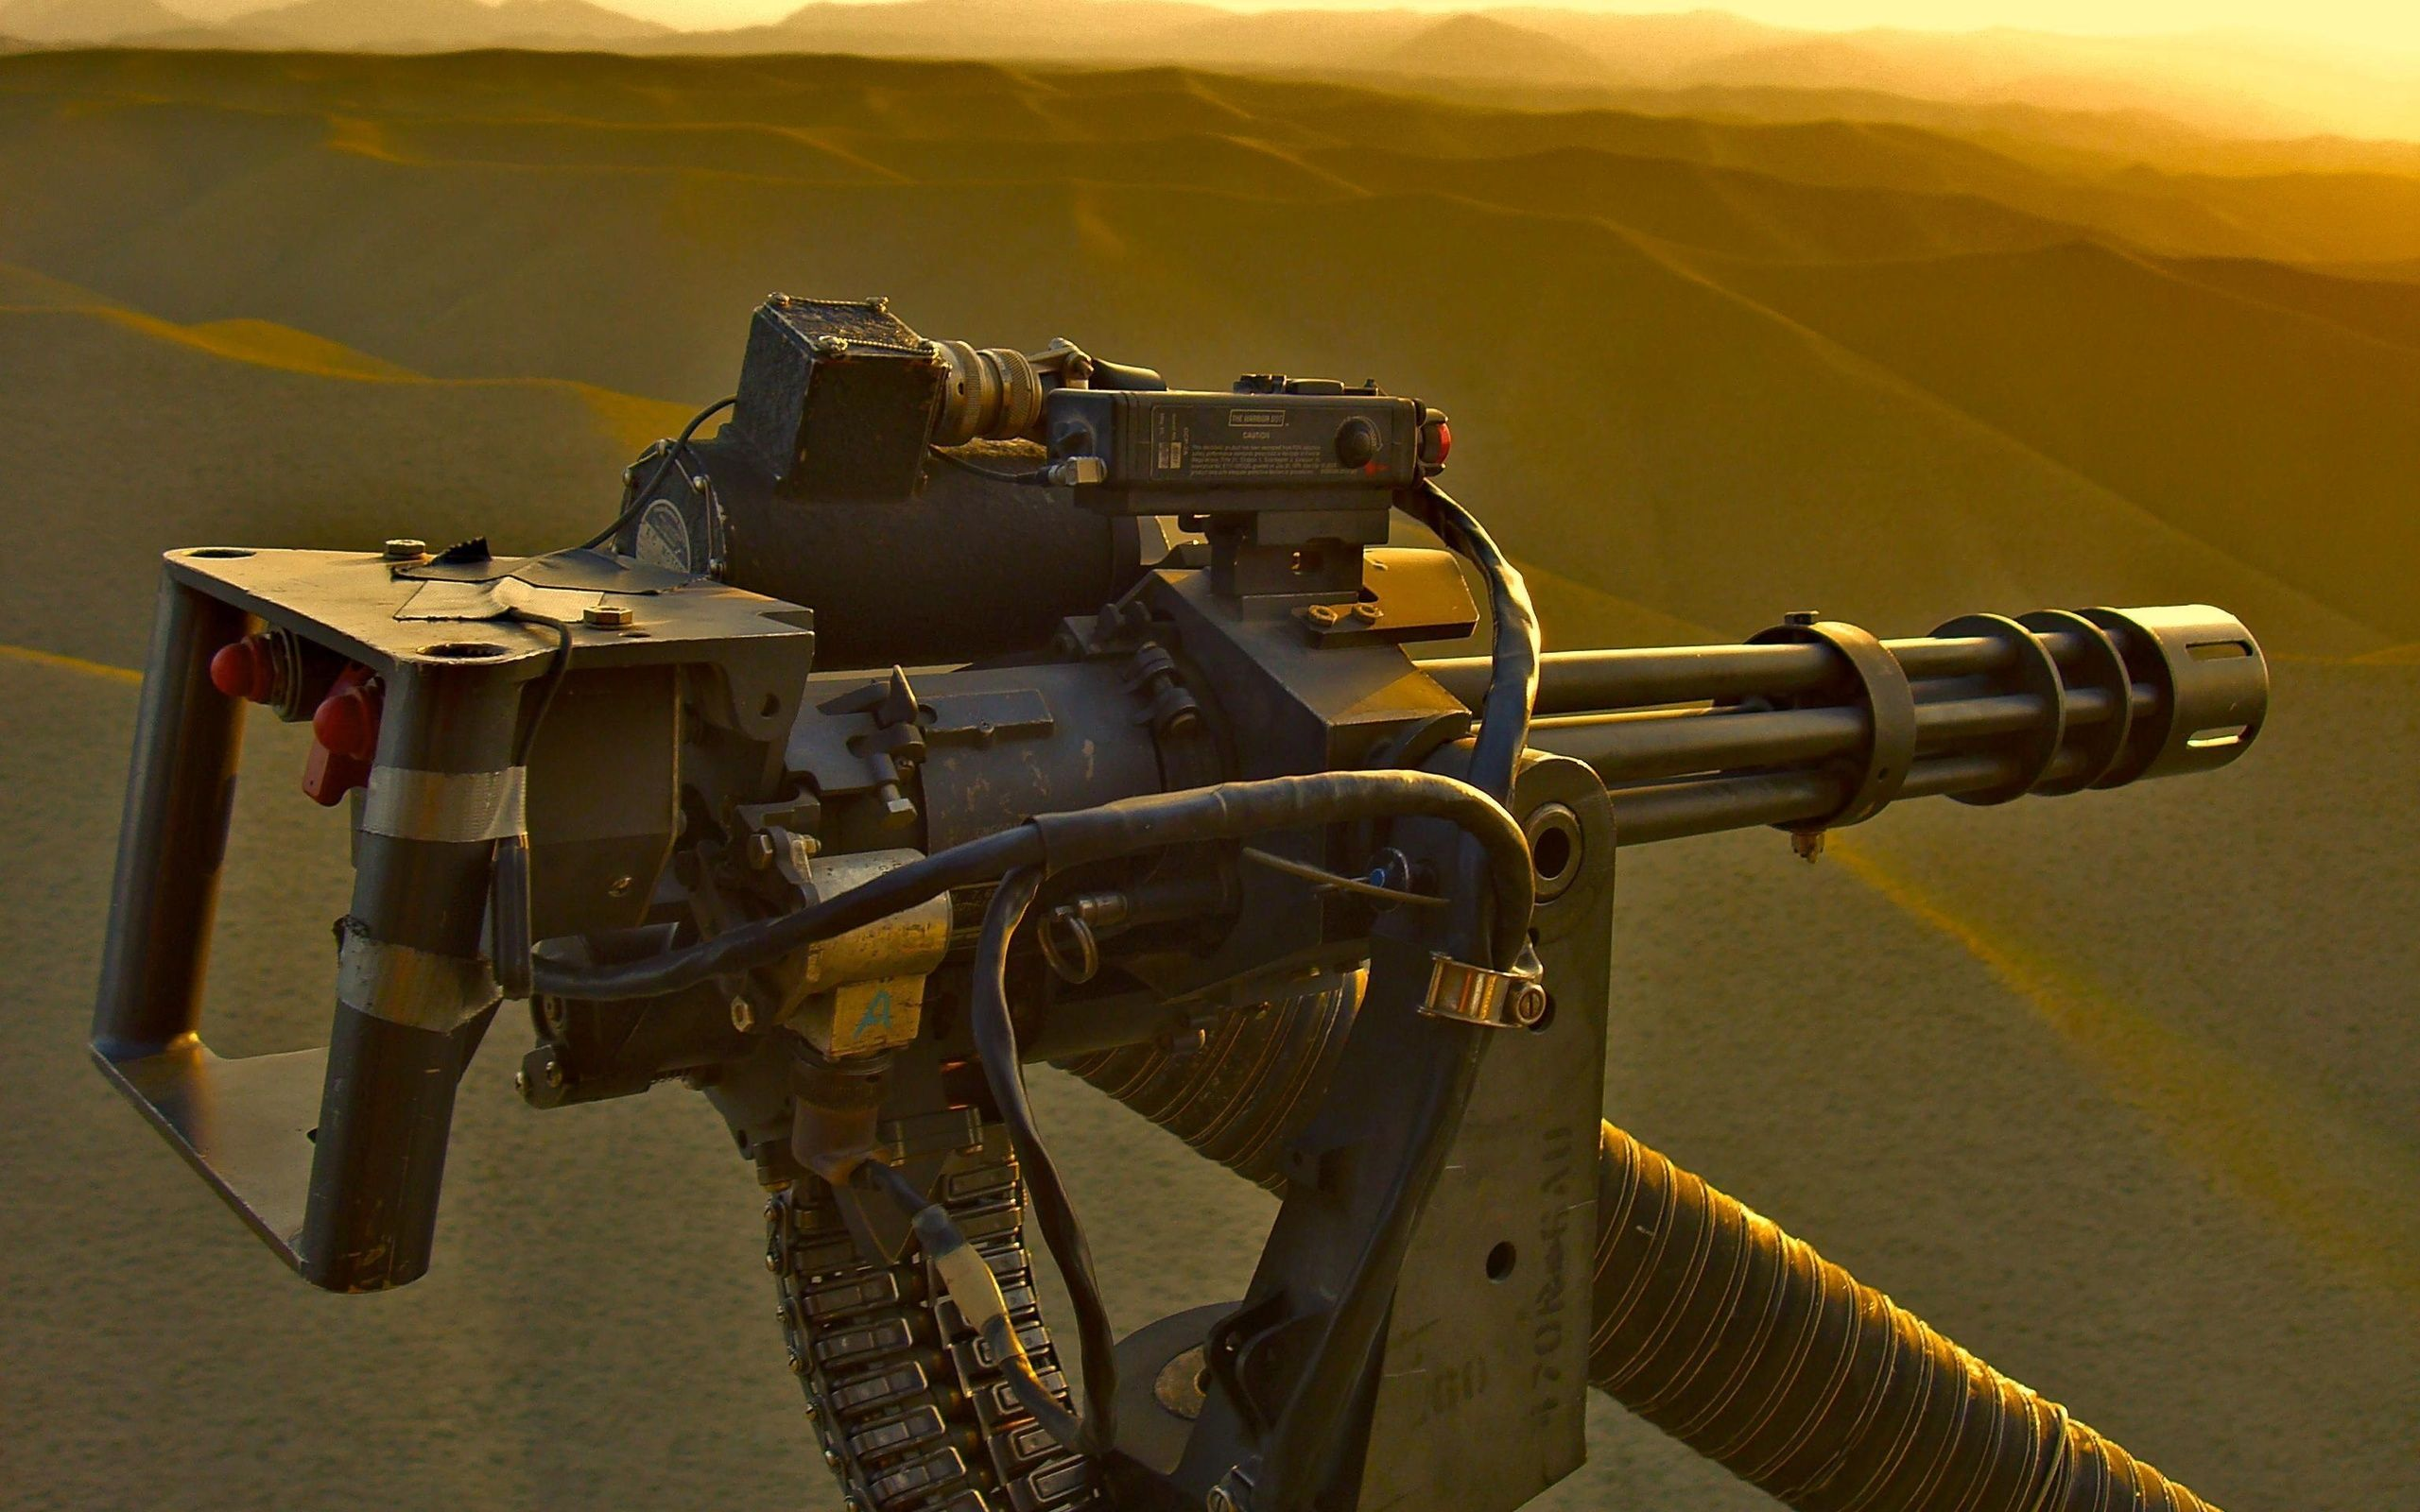 pictures of machine guns wallpaper desktop background with wallpaper high resolution 2560x1600 px 891 71 kb